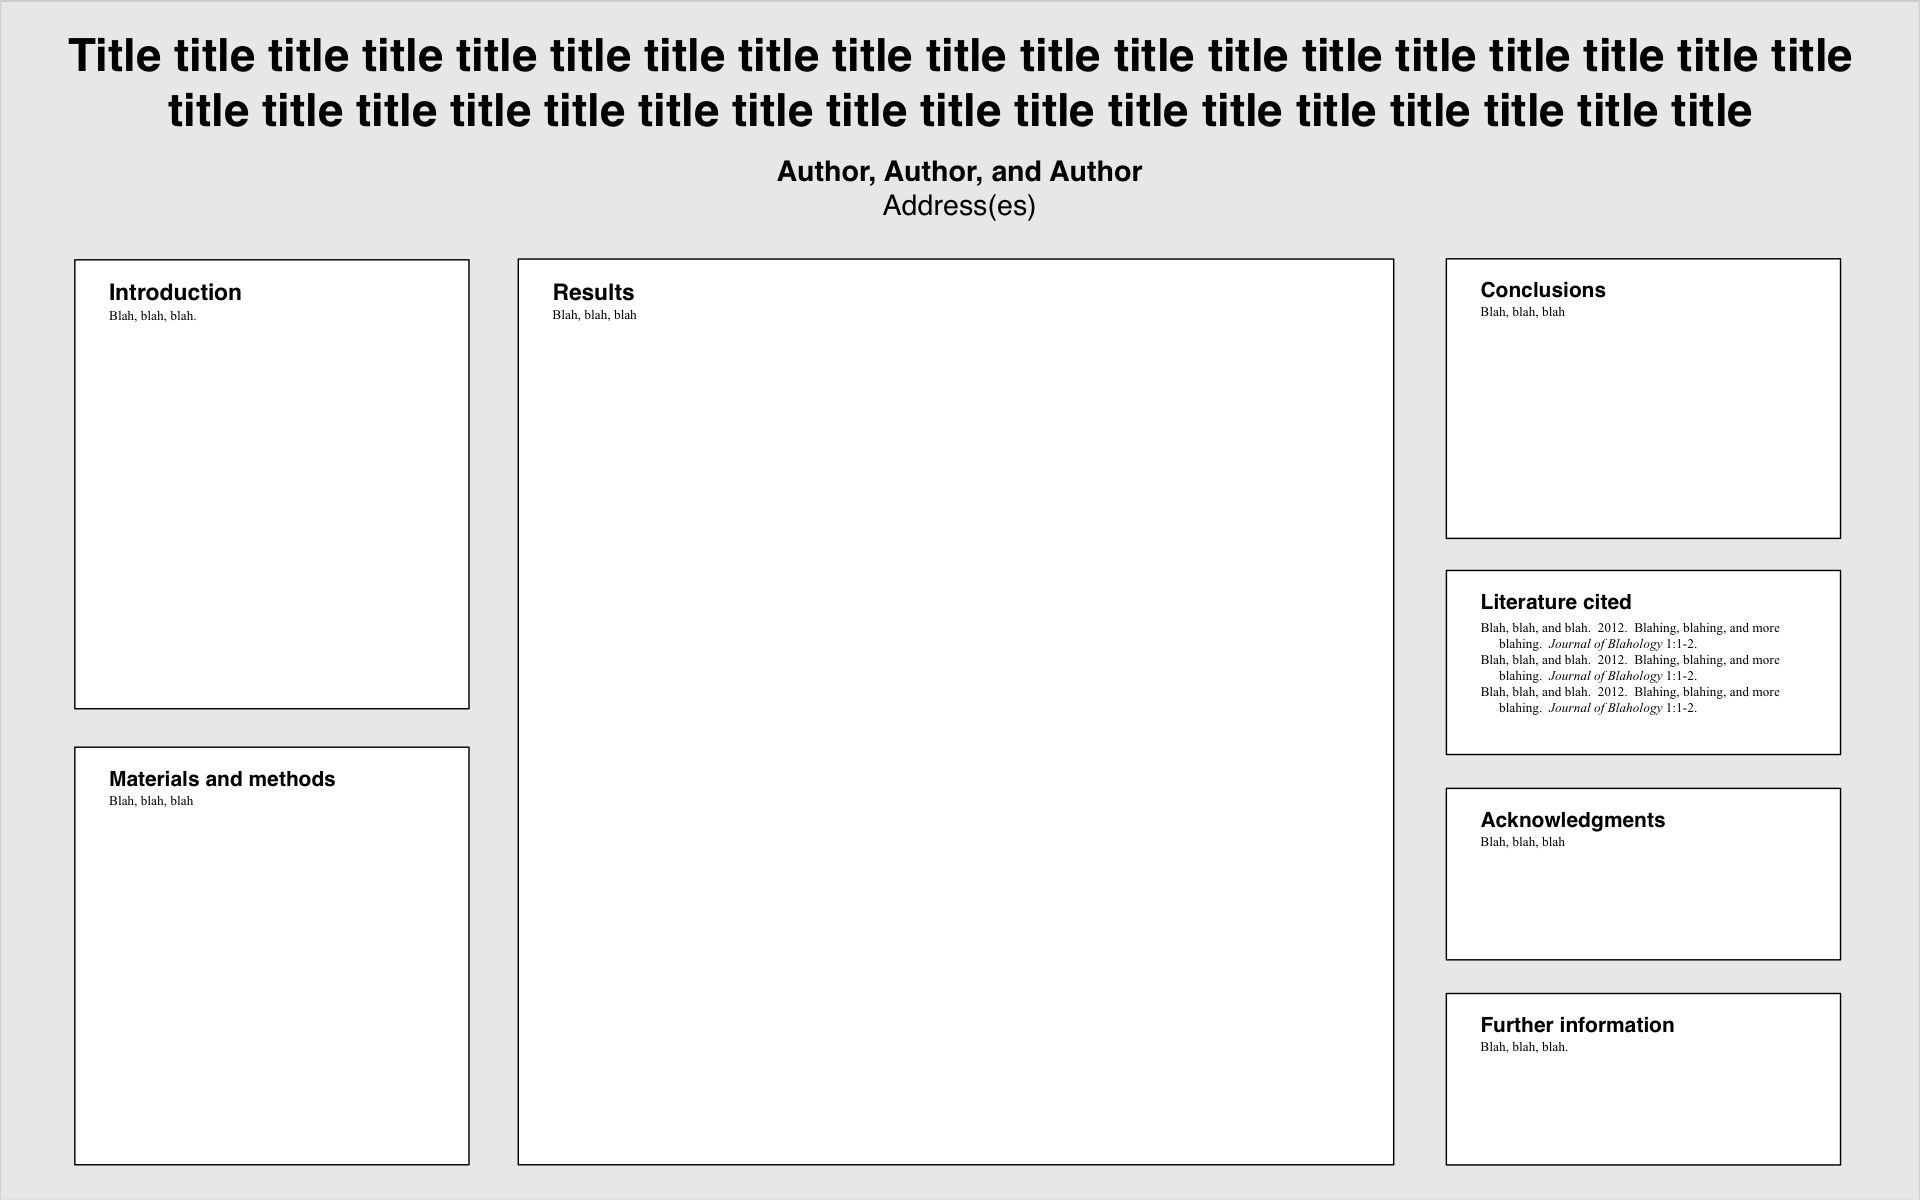 Template for poster presentations on outreach